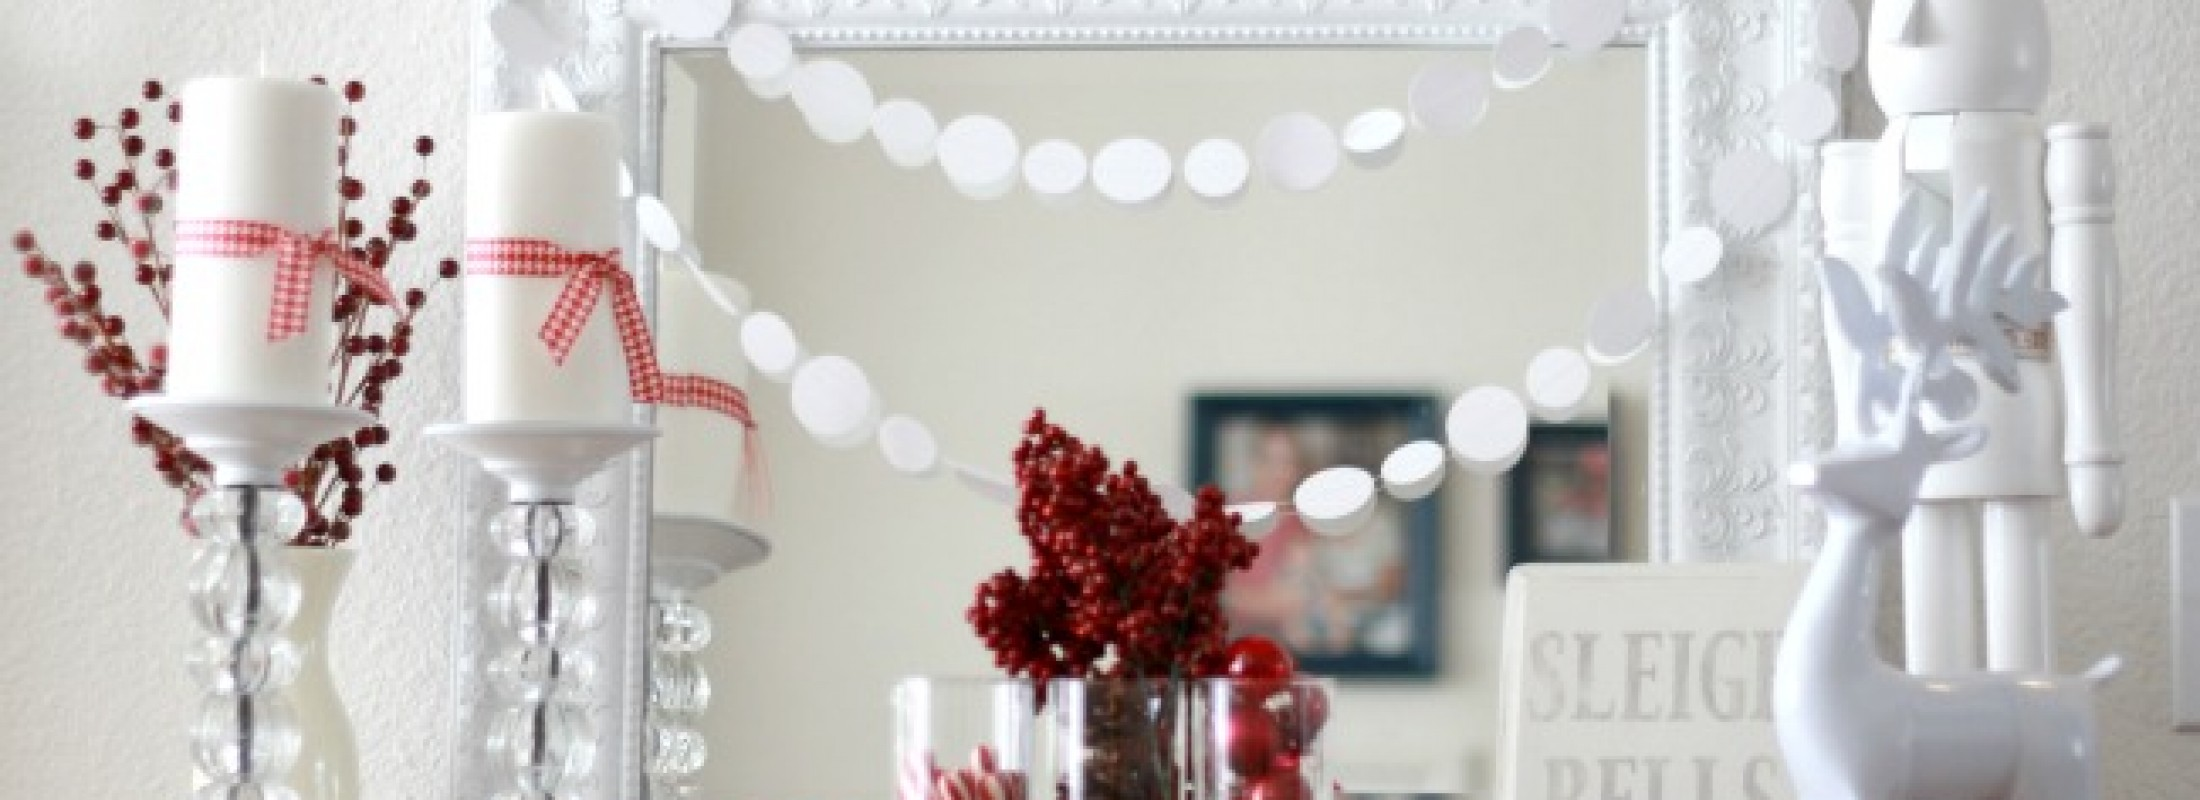 Red And White Christmas Decorations Photo Credit Making Home Base